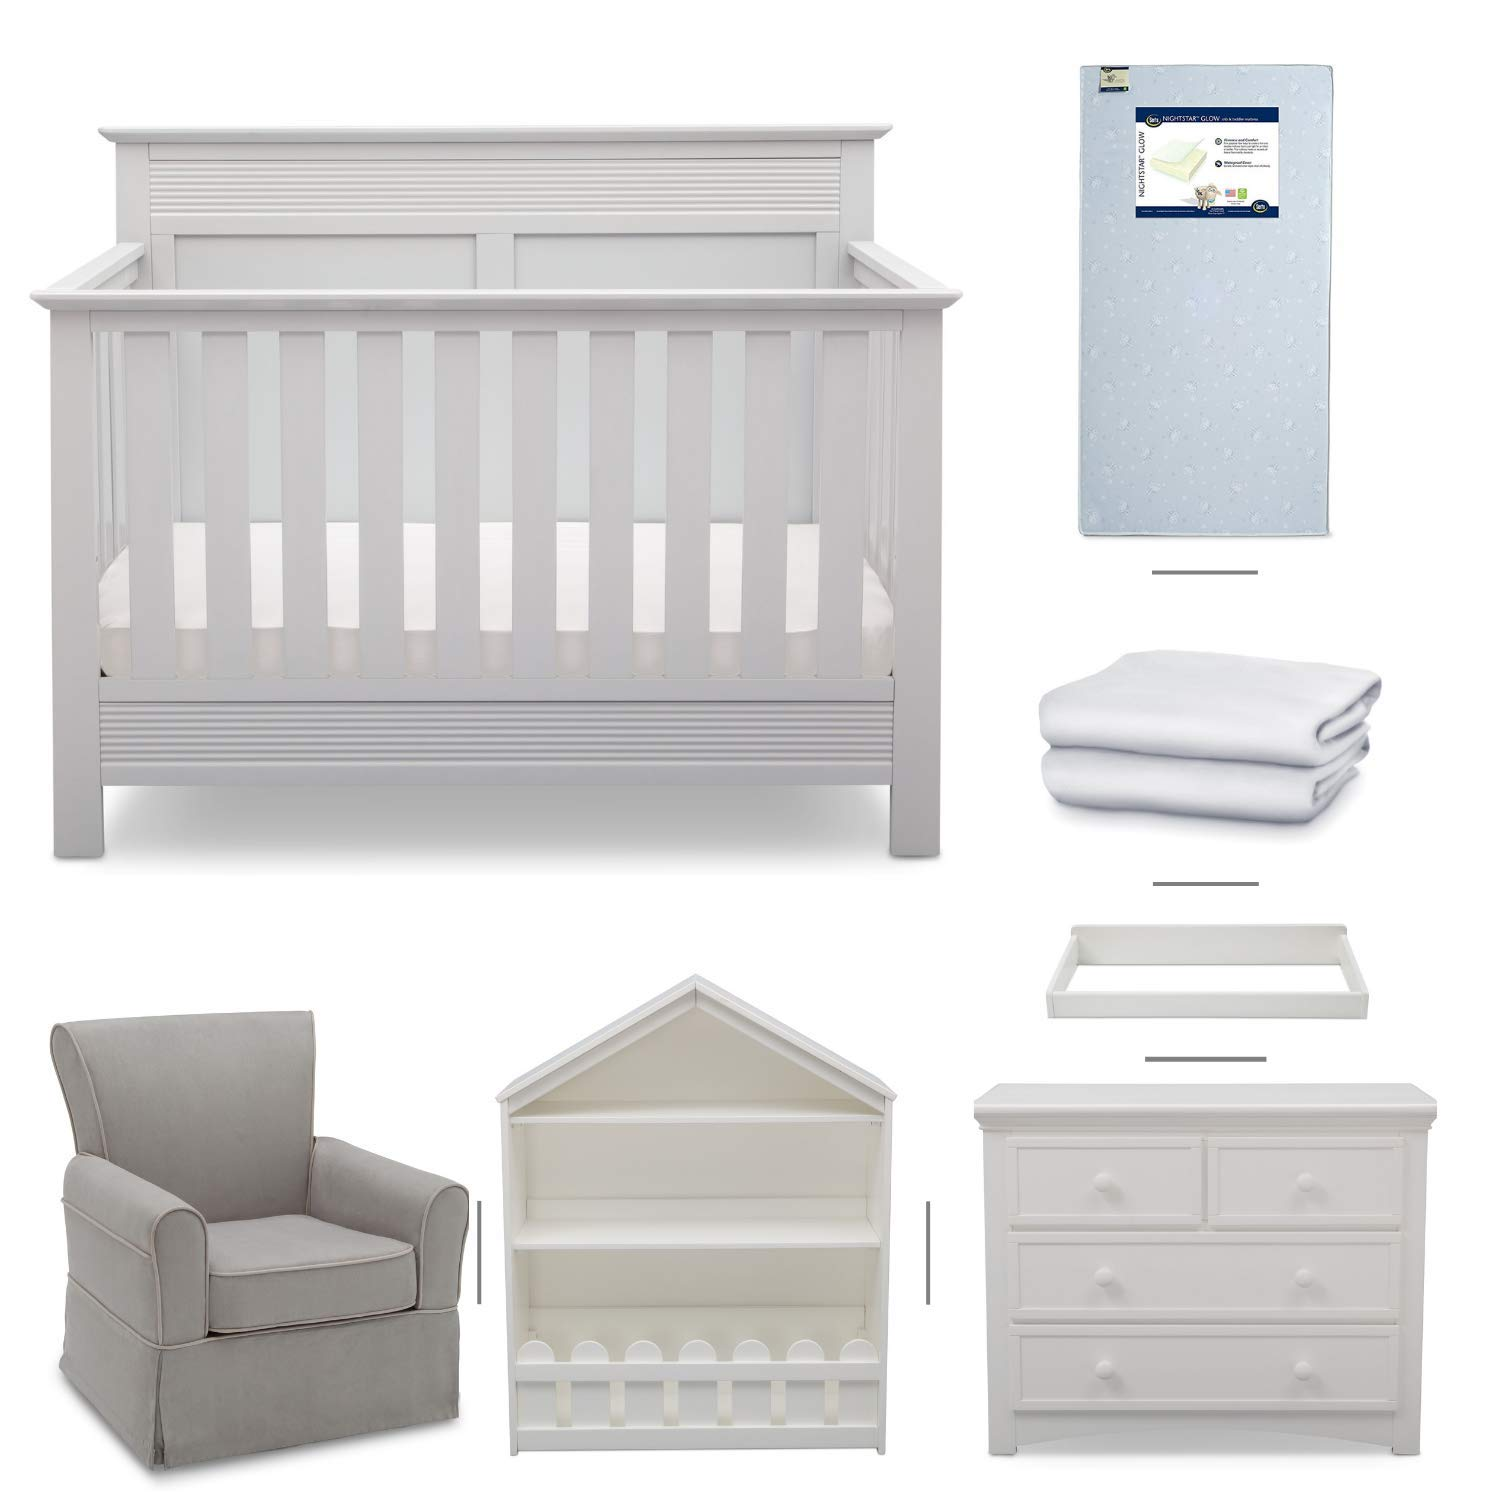 Crib Furniture - 7 Piece Nursery Set with Crib Mattress, Convertible Crib, Dresser, Bookcase, Glider Chair, Changing Top, Crib Sheets, Serta Fall River - White/Dove Gray by Delta Children